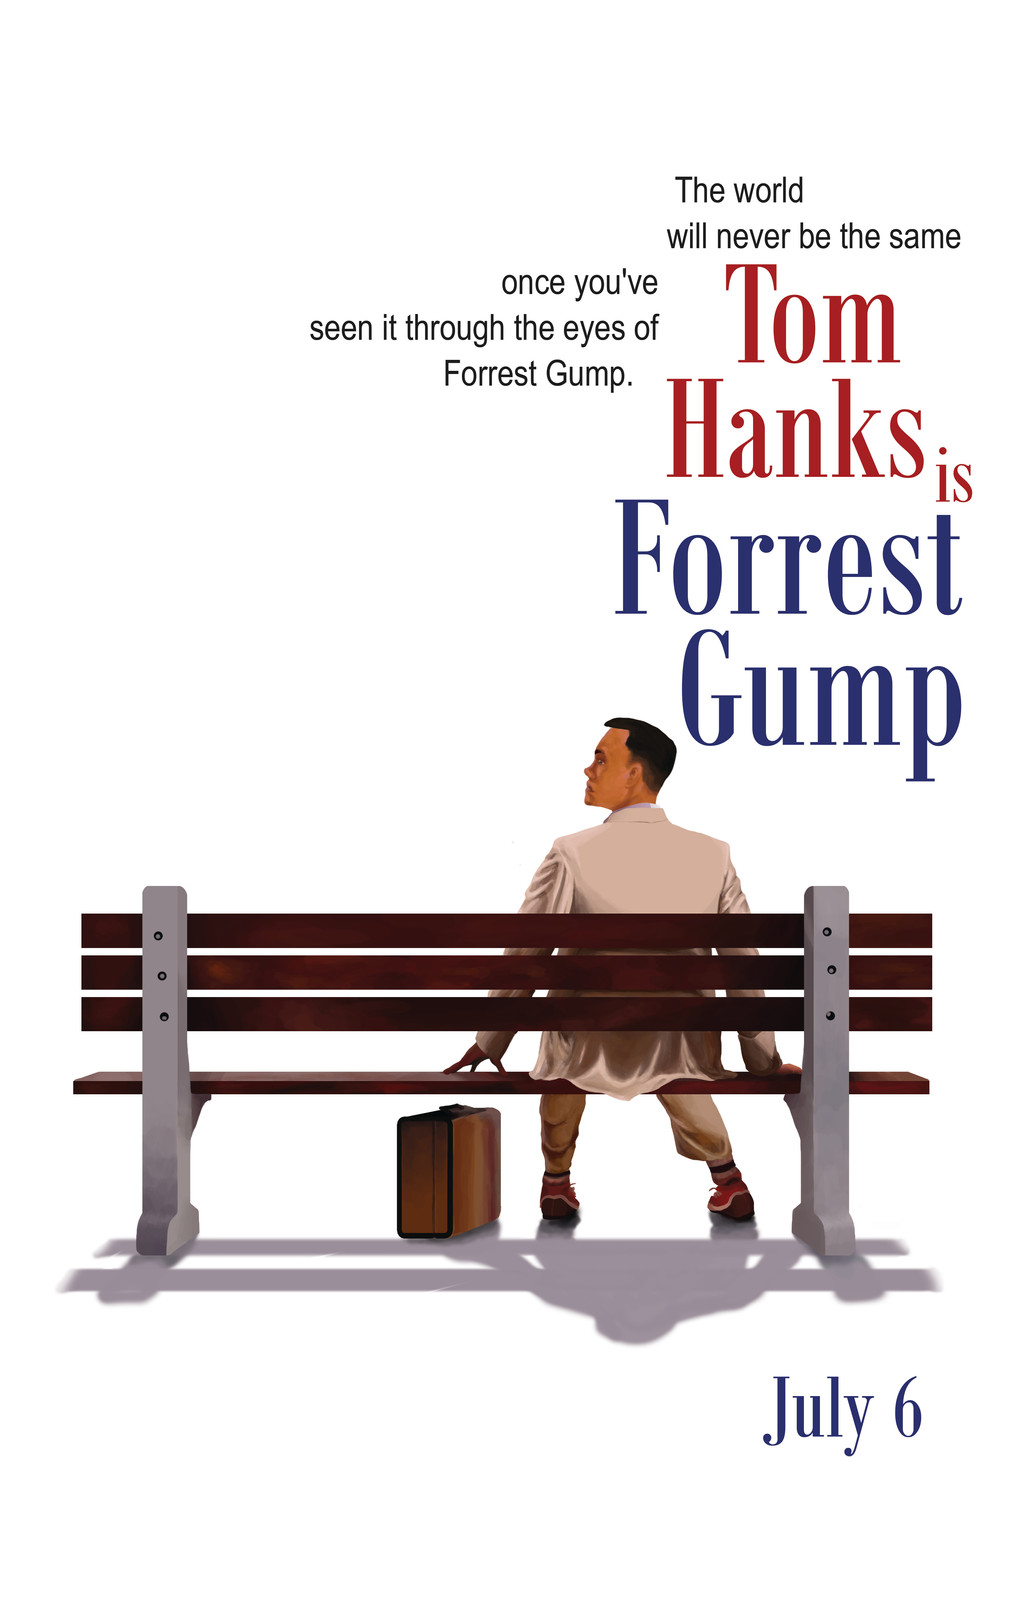 Recreate the Forrest Gump movie poster